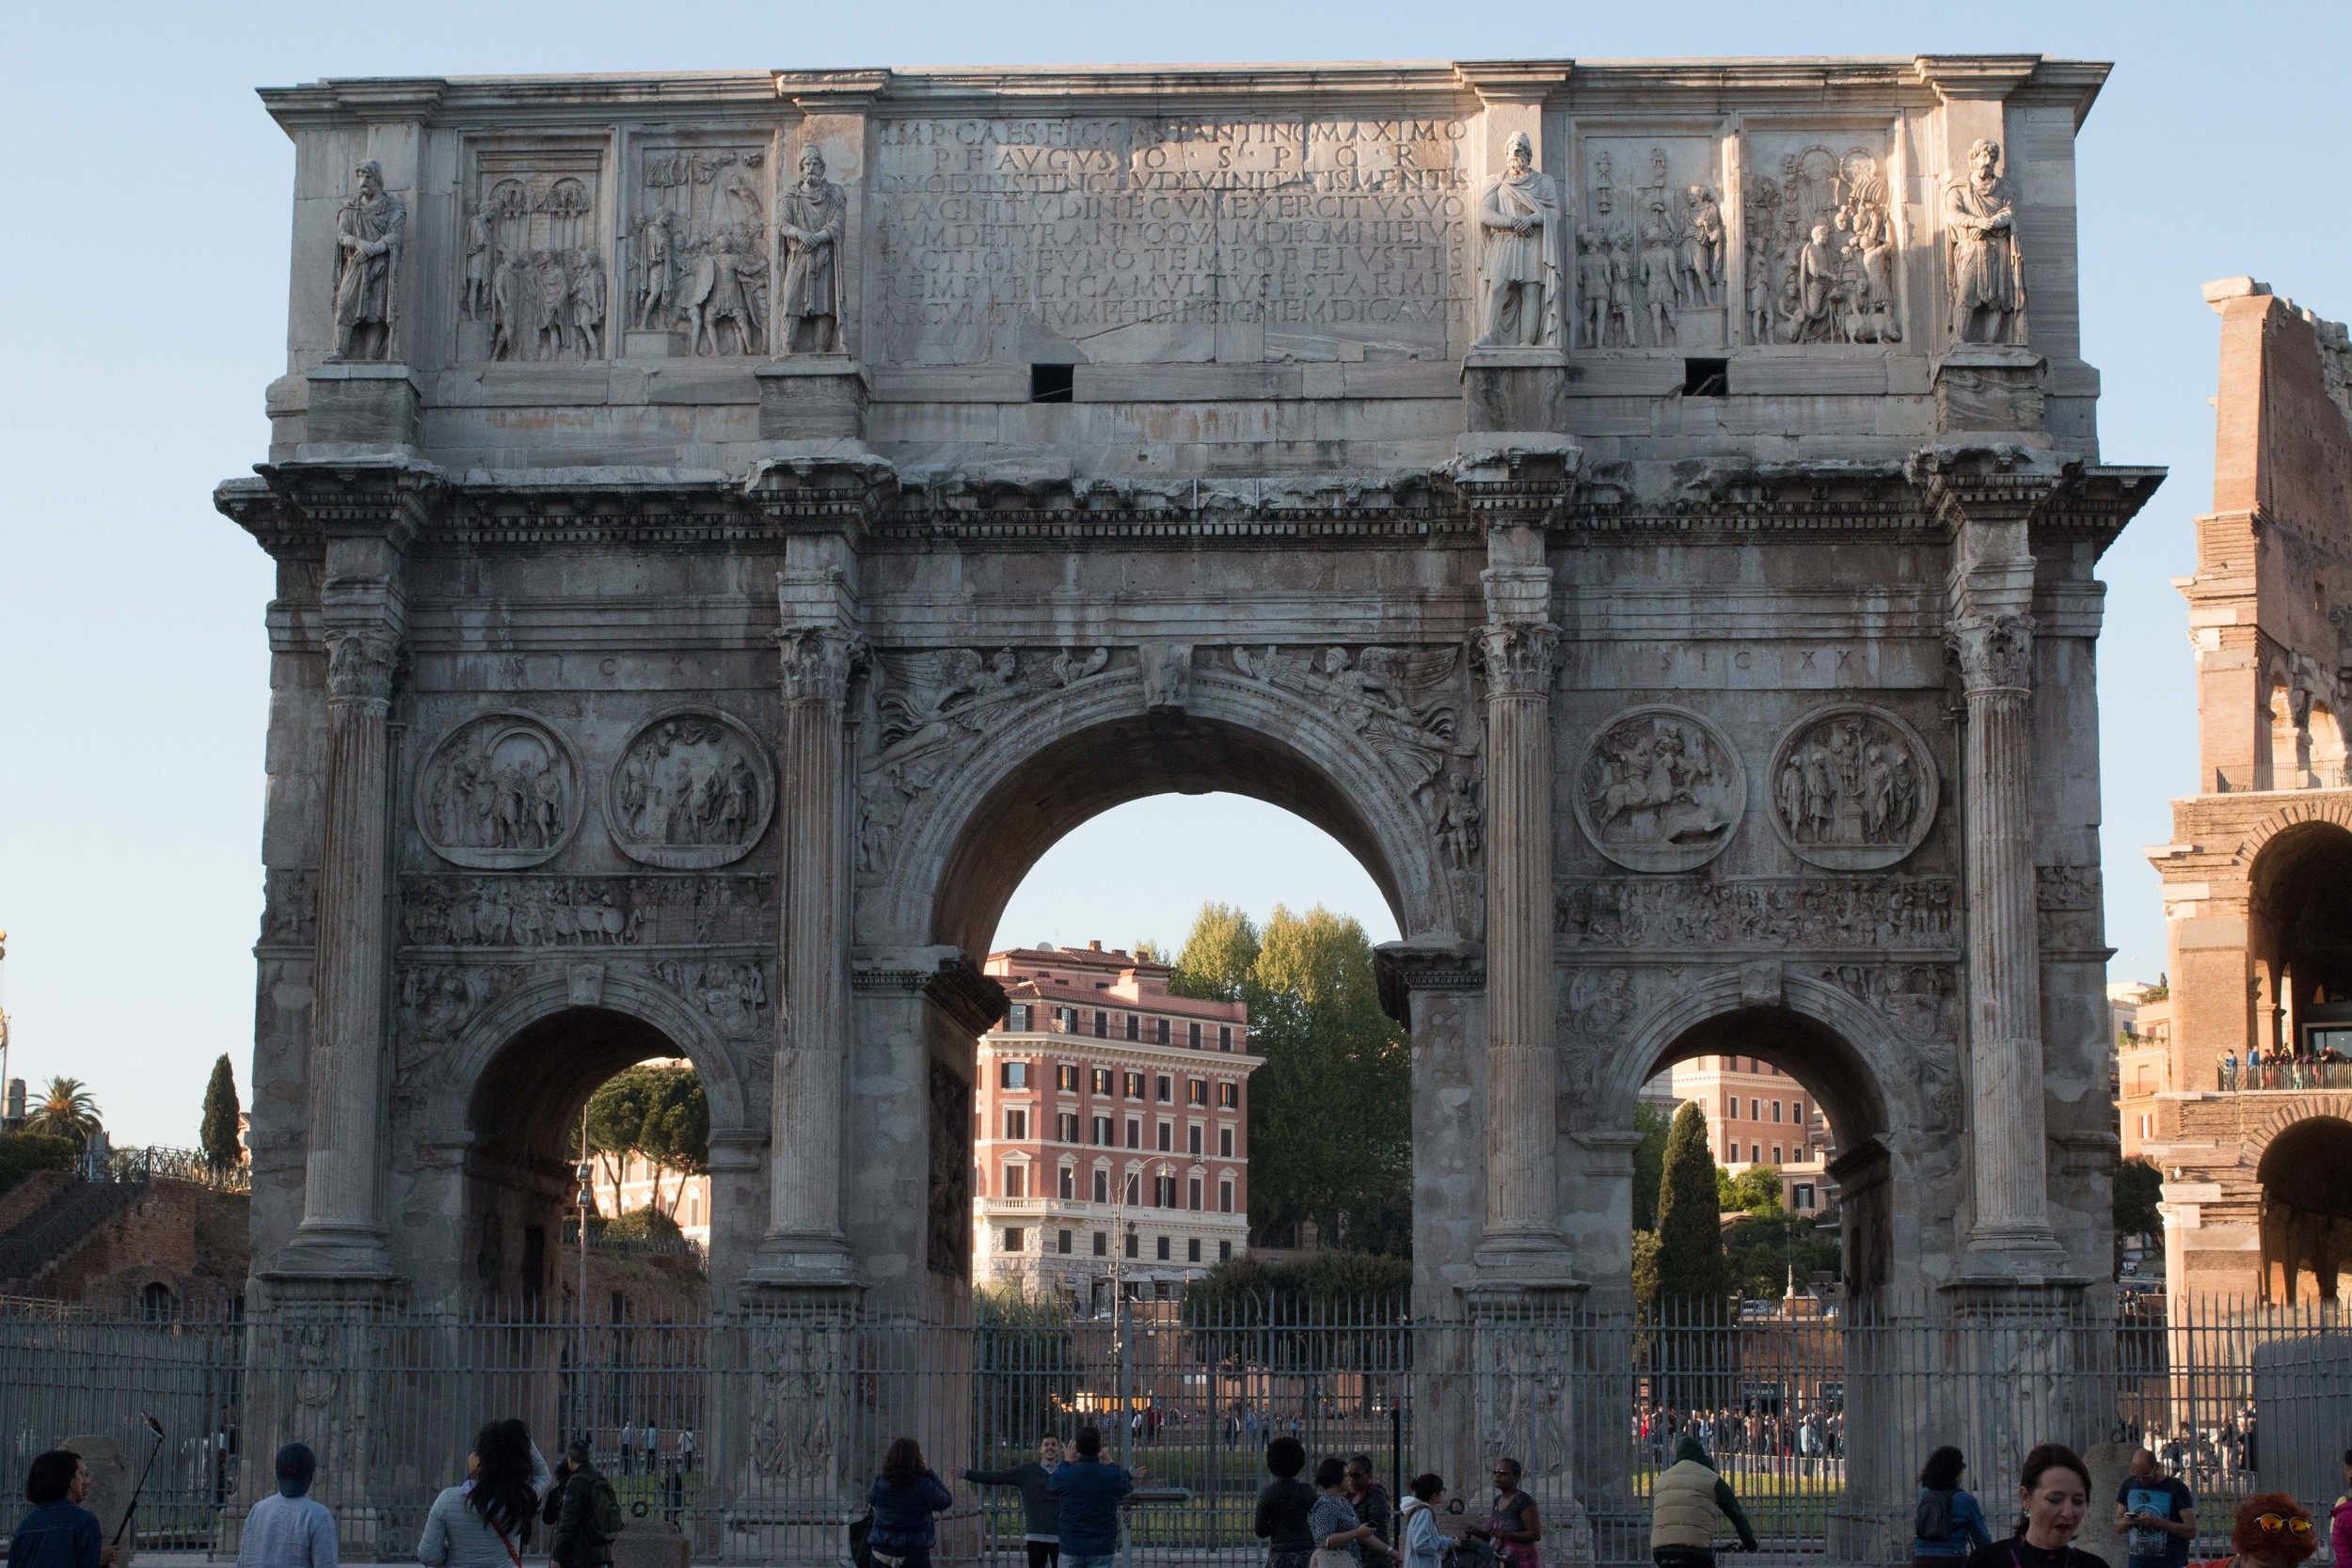 The ancient gate at the Colosseum